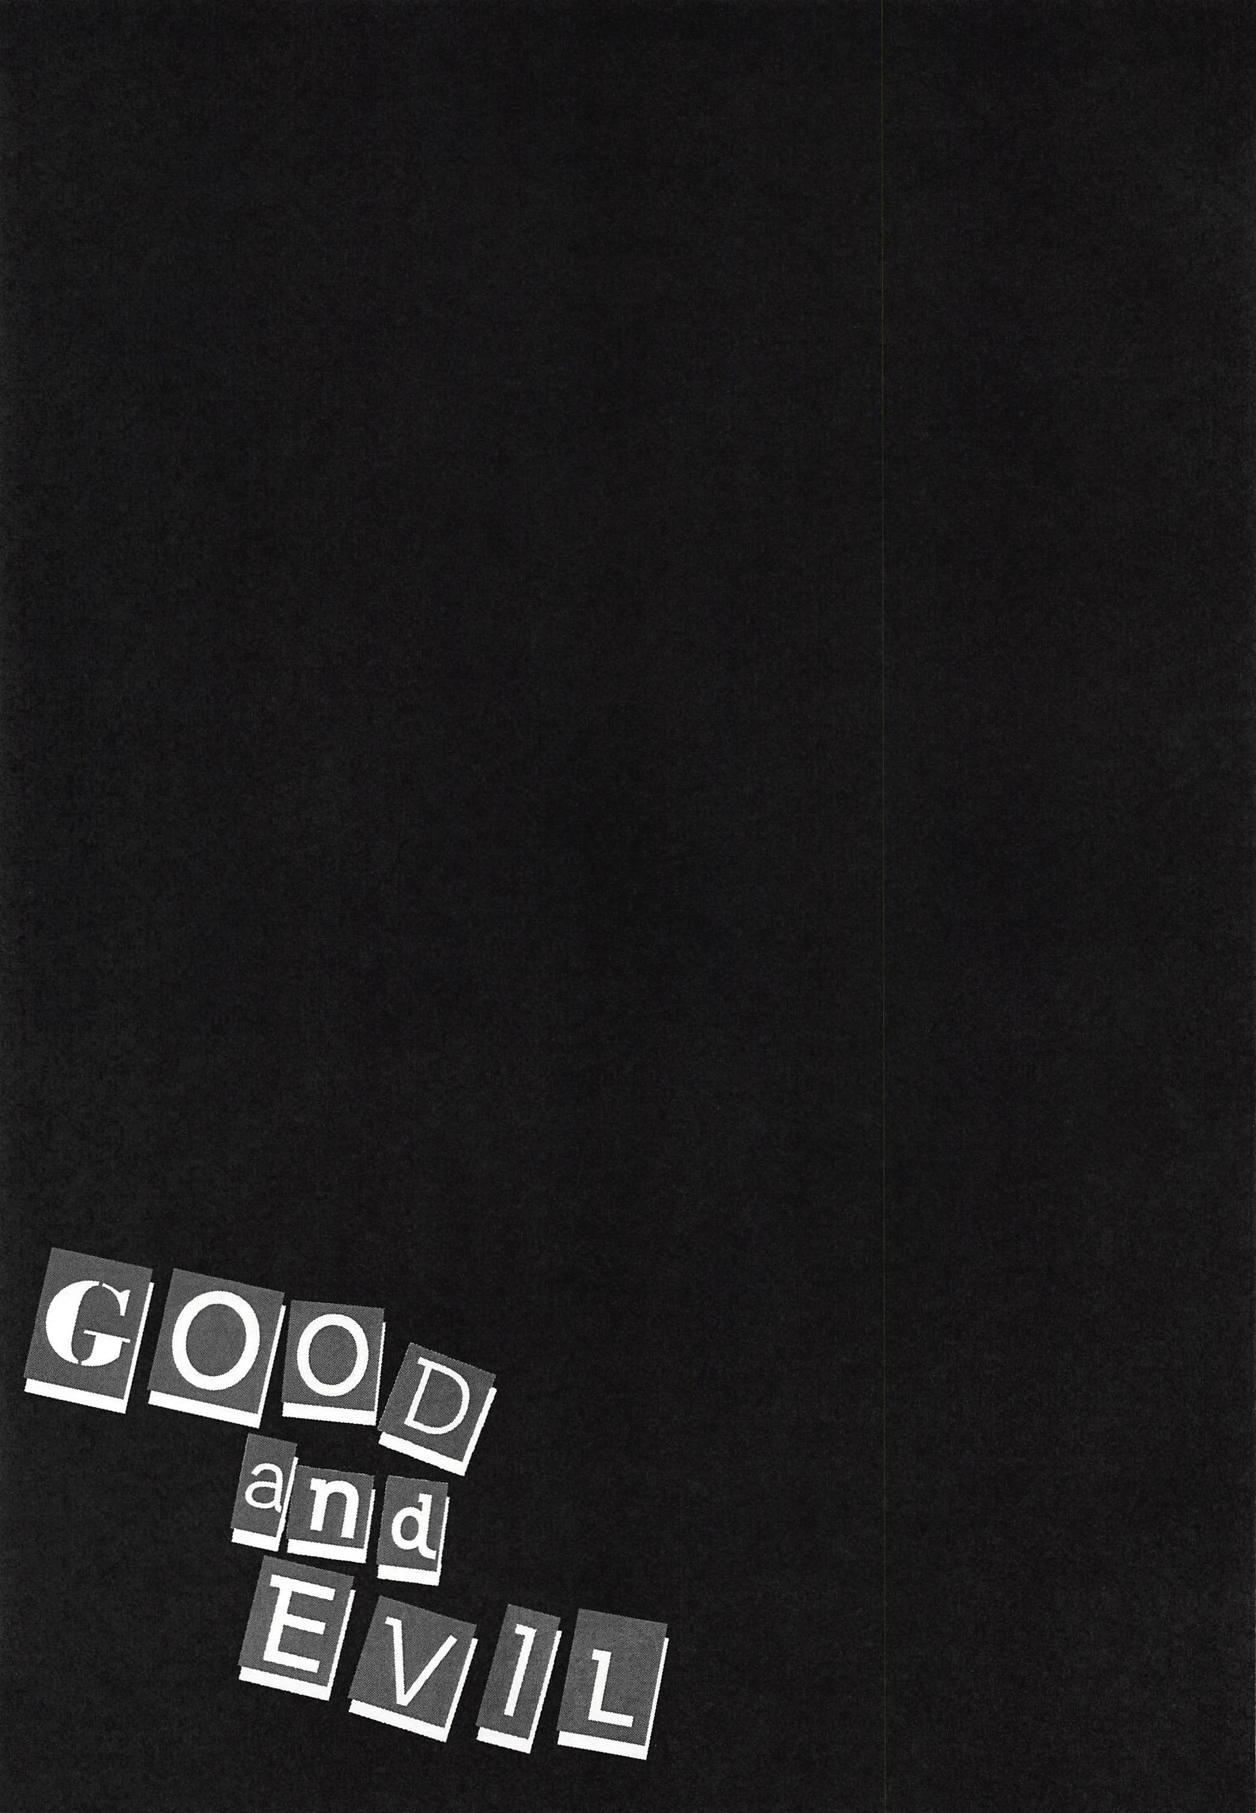 GOOD and EVIL 11